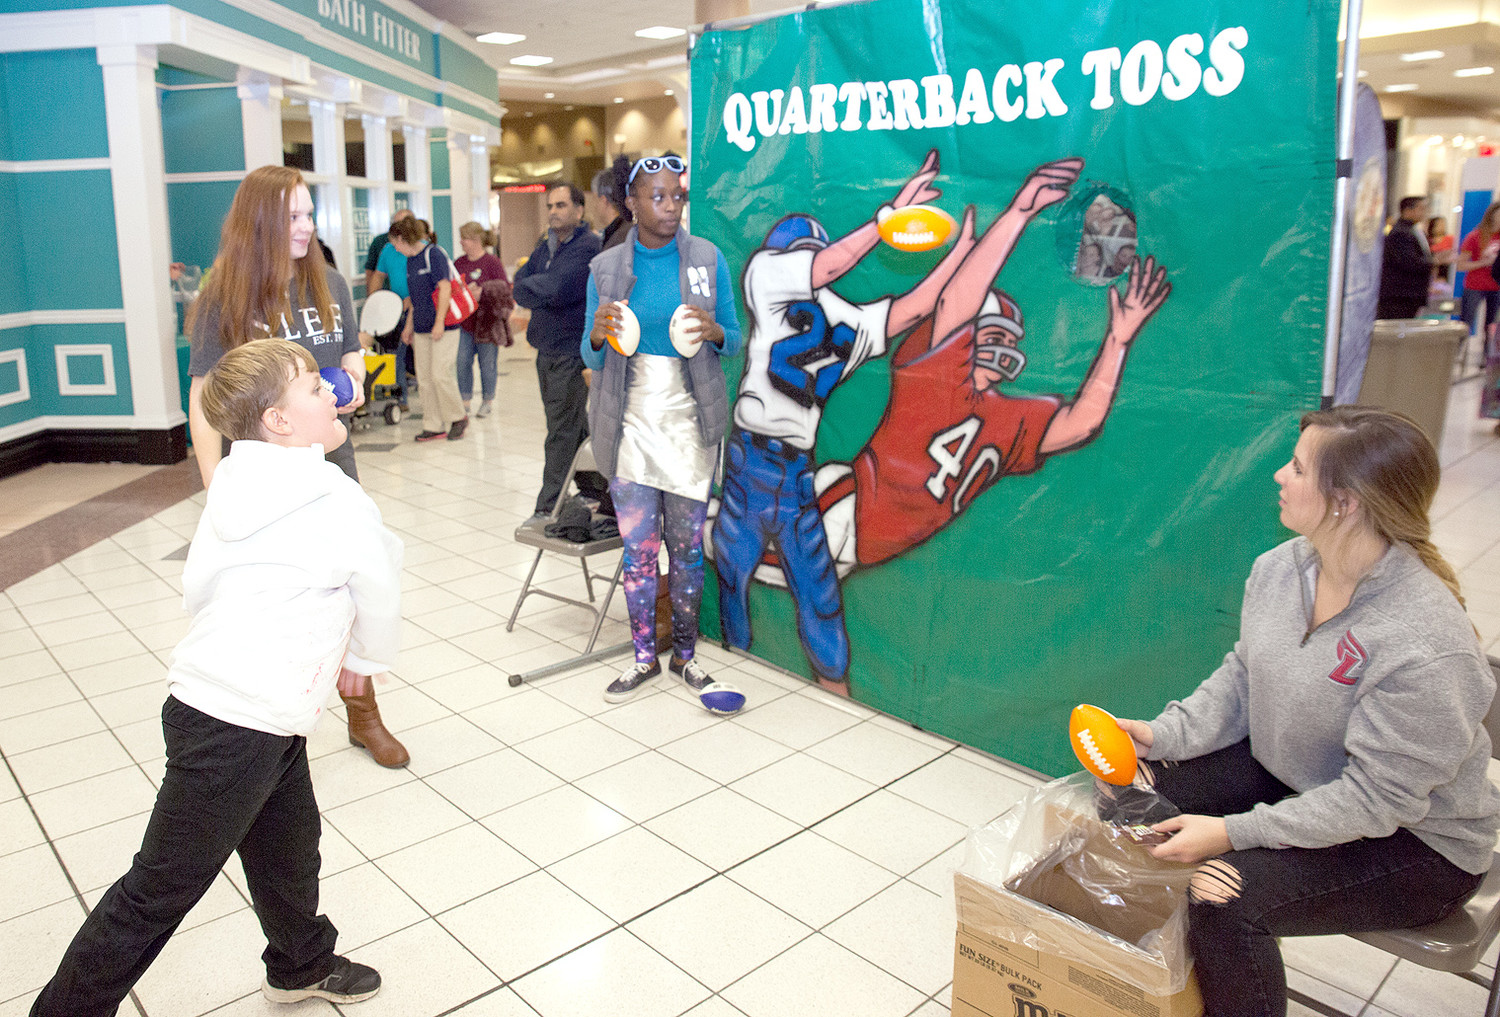 Brayden Milam completes a pass at the Quarterback Toss during the annual Spooktacular Fall Festival at Bradley Square Mall.  The event is sponsored by Westwood Baptist Church, River Hills Church of God and Westmore Church of God.